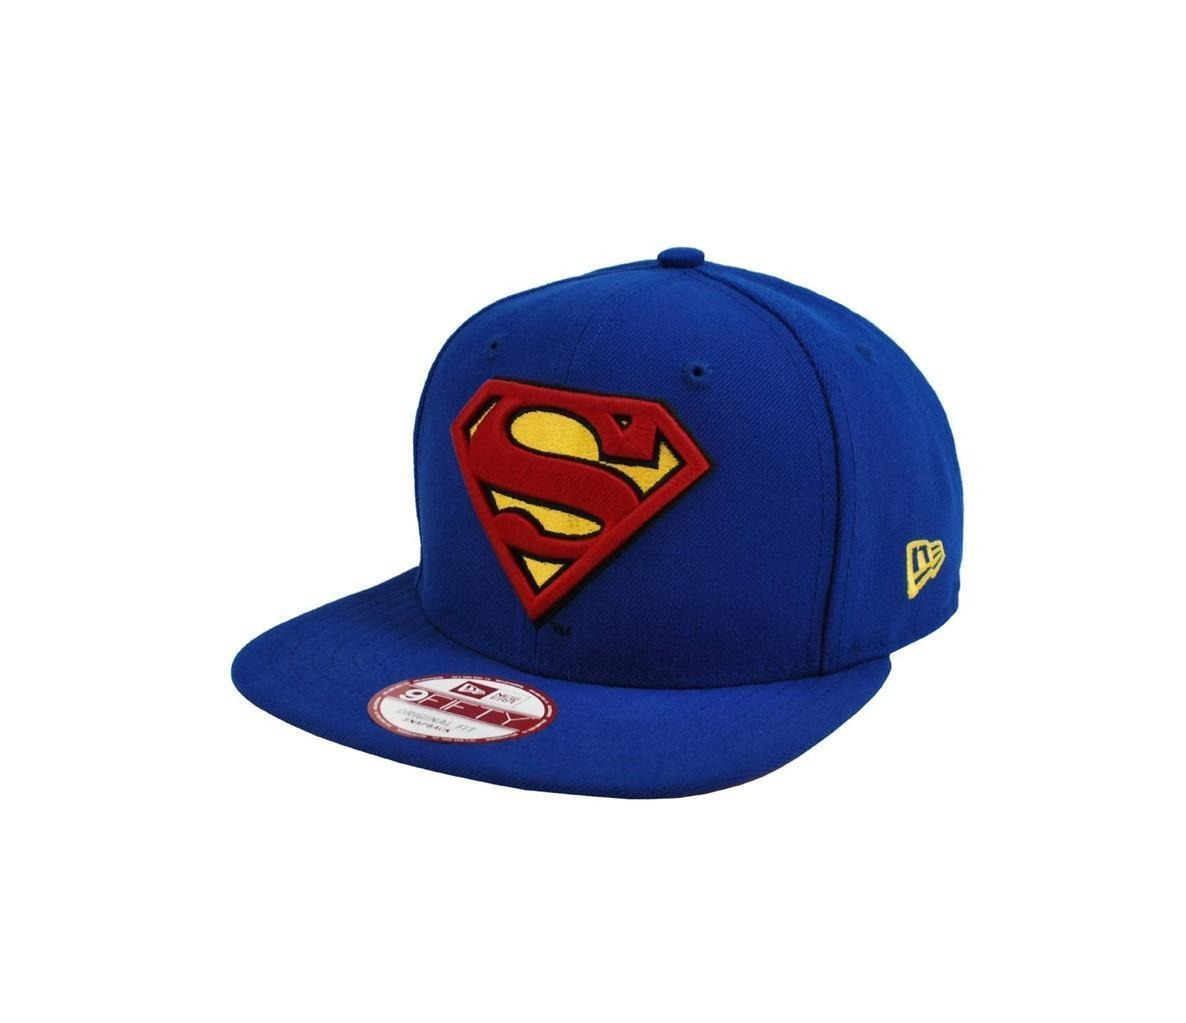 ad3600d516333 gorra new era superman. Cargando zoom.